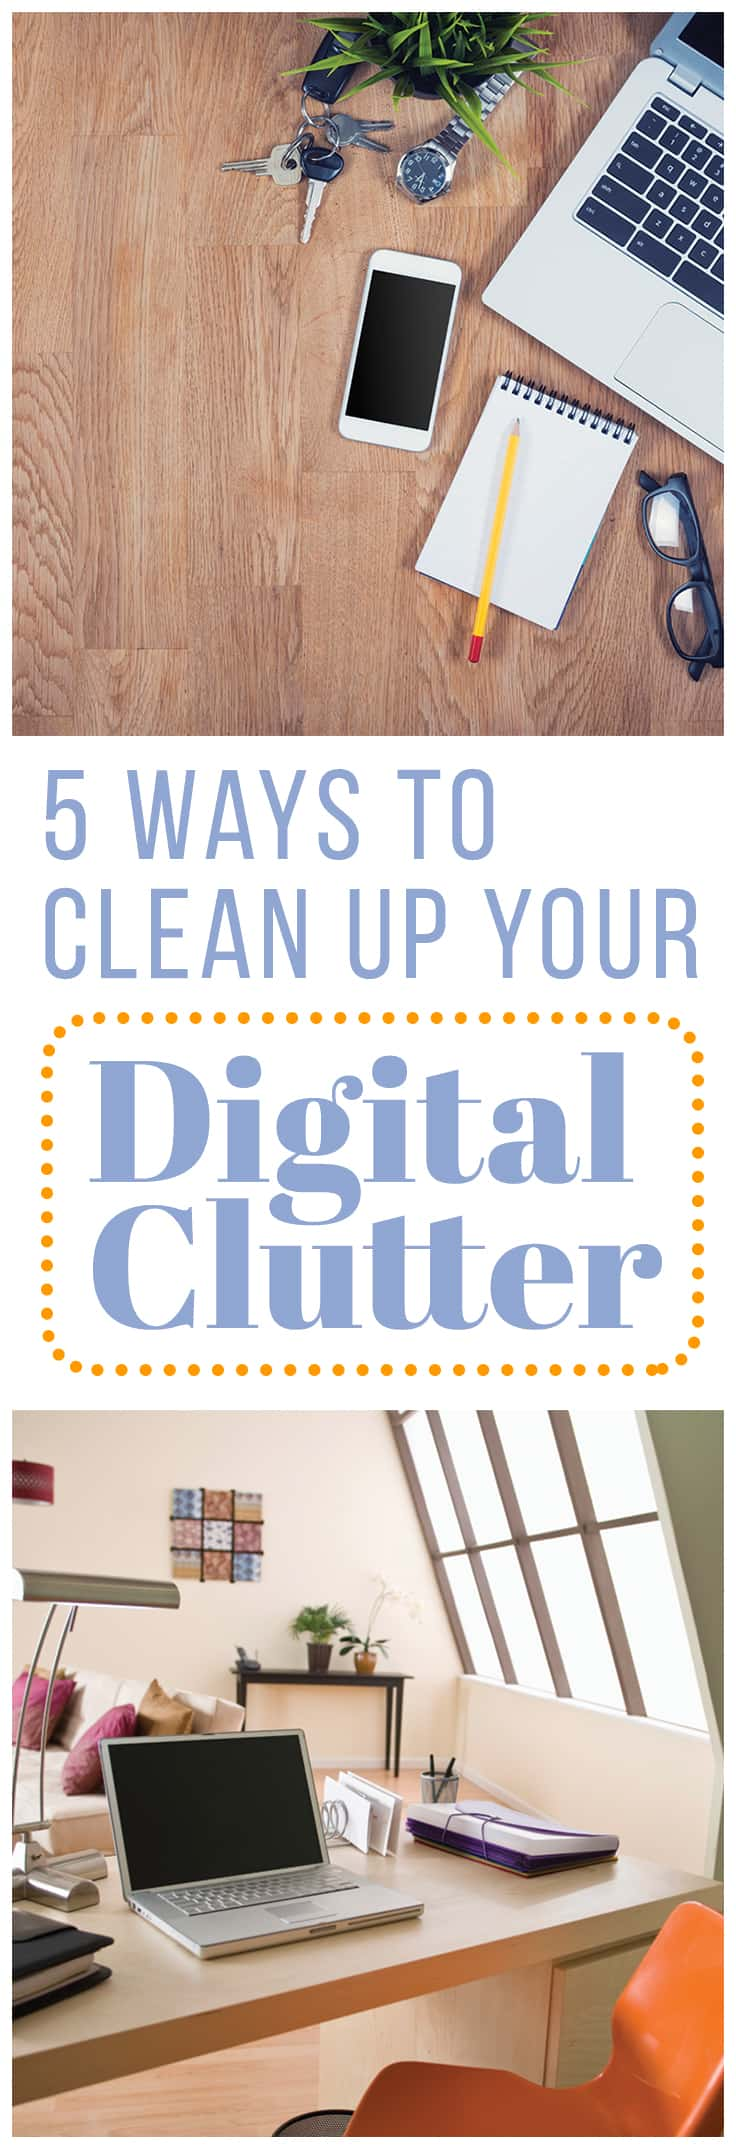 Most people can't work well in a cluttered space. Eliminating physical clutter and creating a cozy and inspiring workspace is a great way to get more done, but there's one aspect of clutter that often gets overlooked: digital clutter.